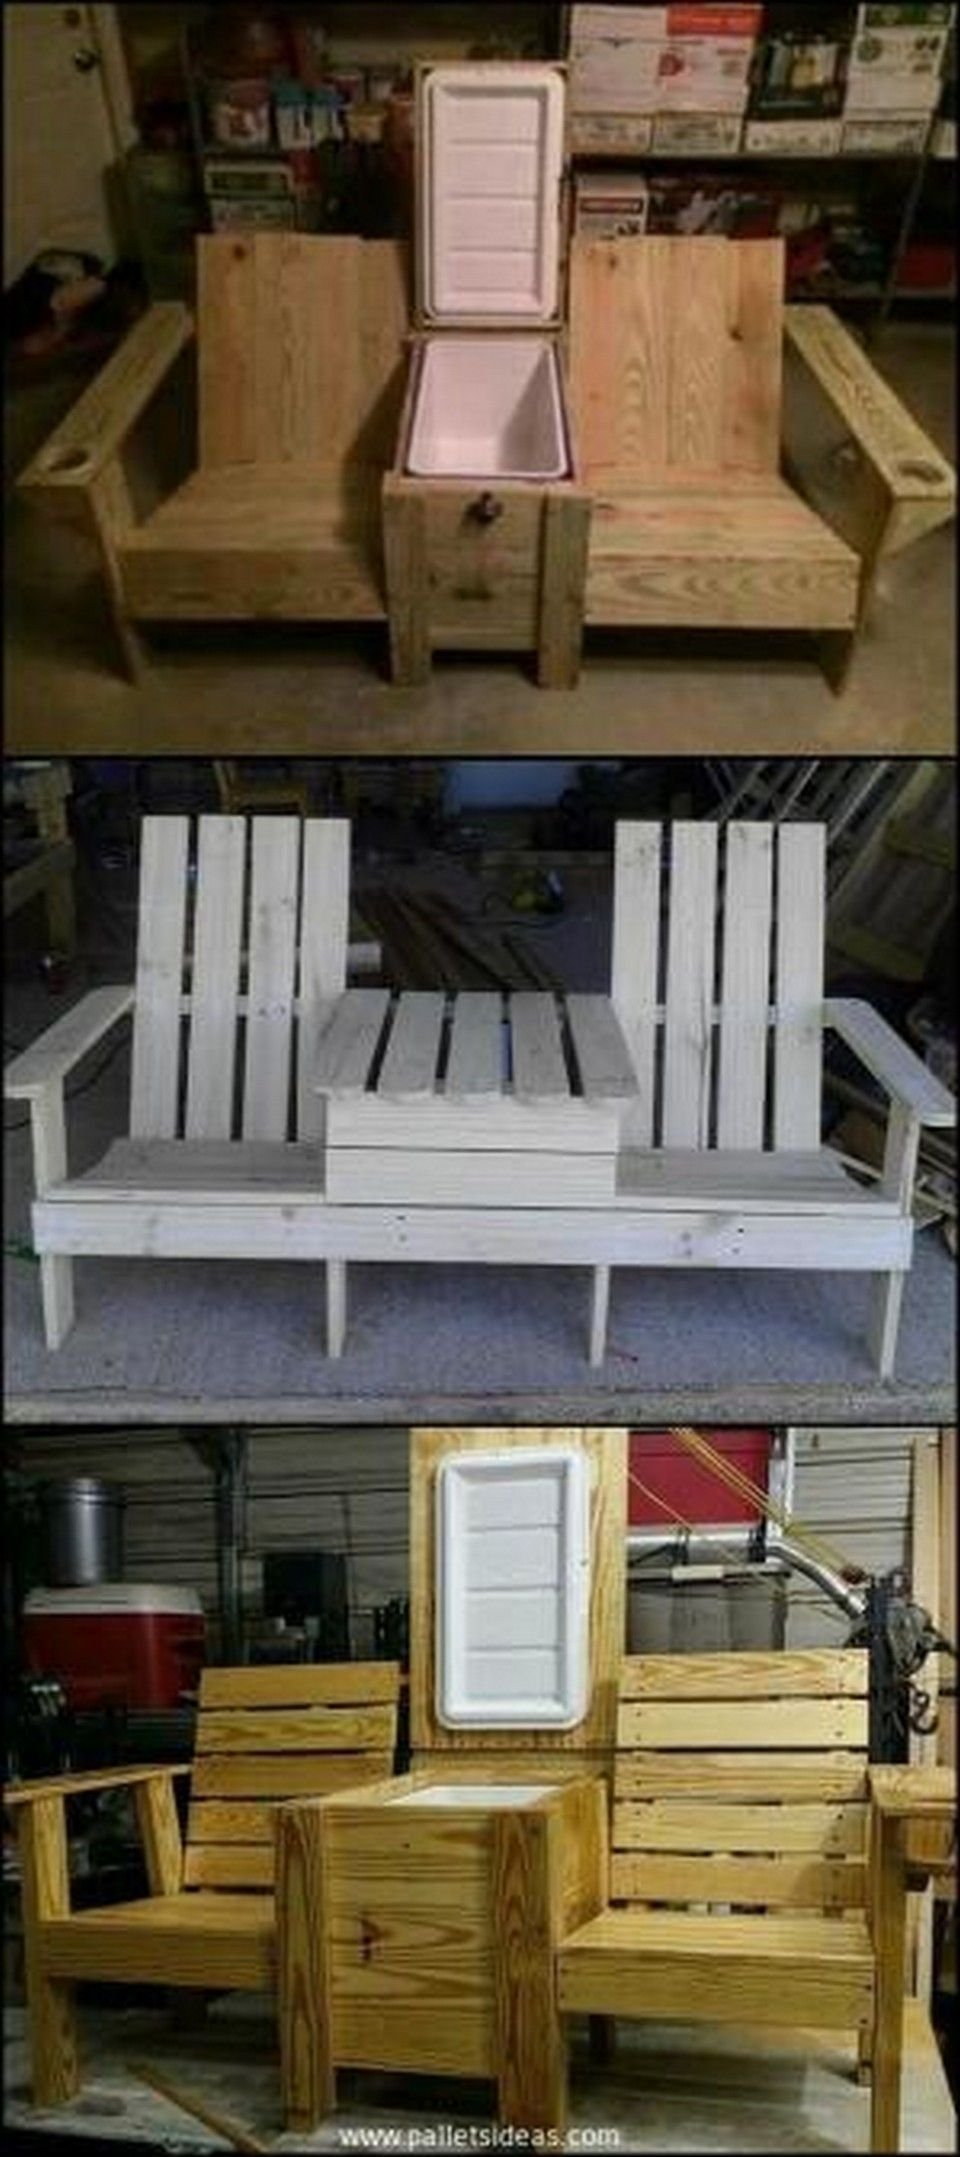 Pallet Home Nice 133 Diy Pallet Projects For Your Home Improvementhttps